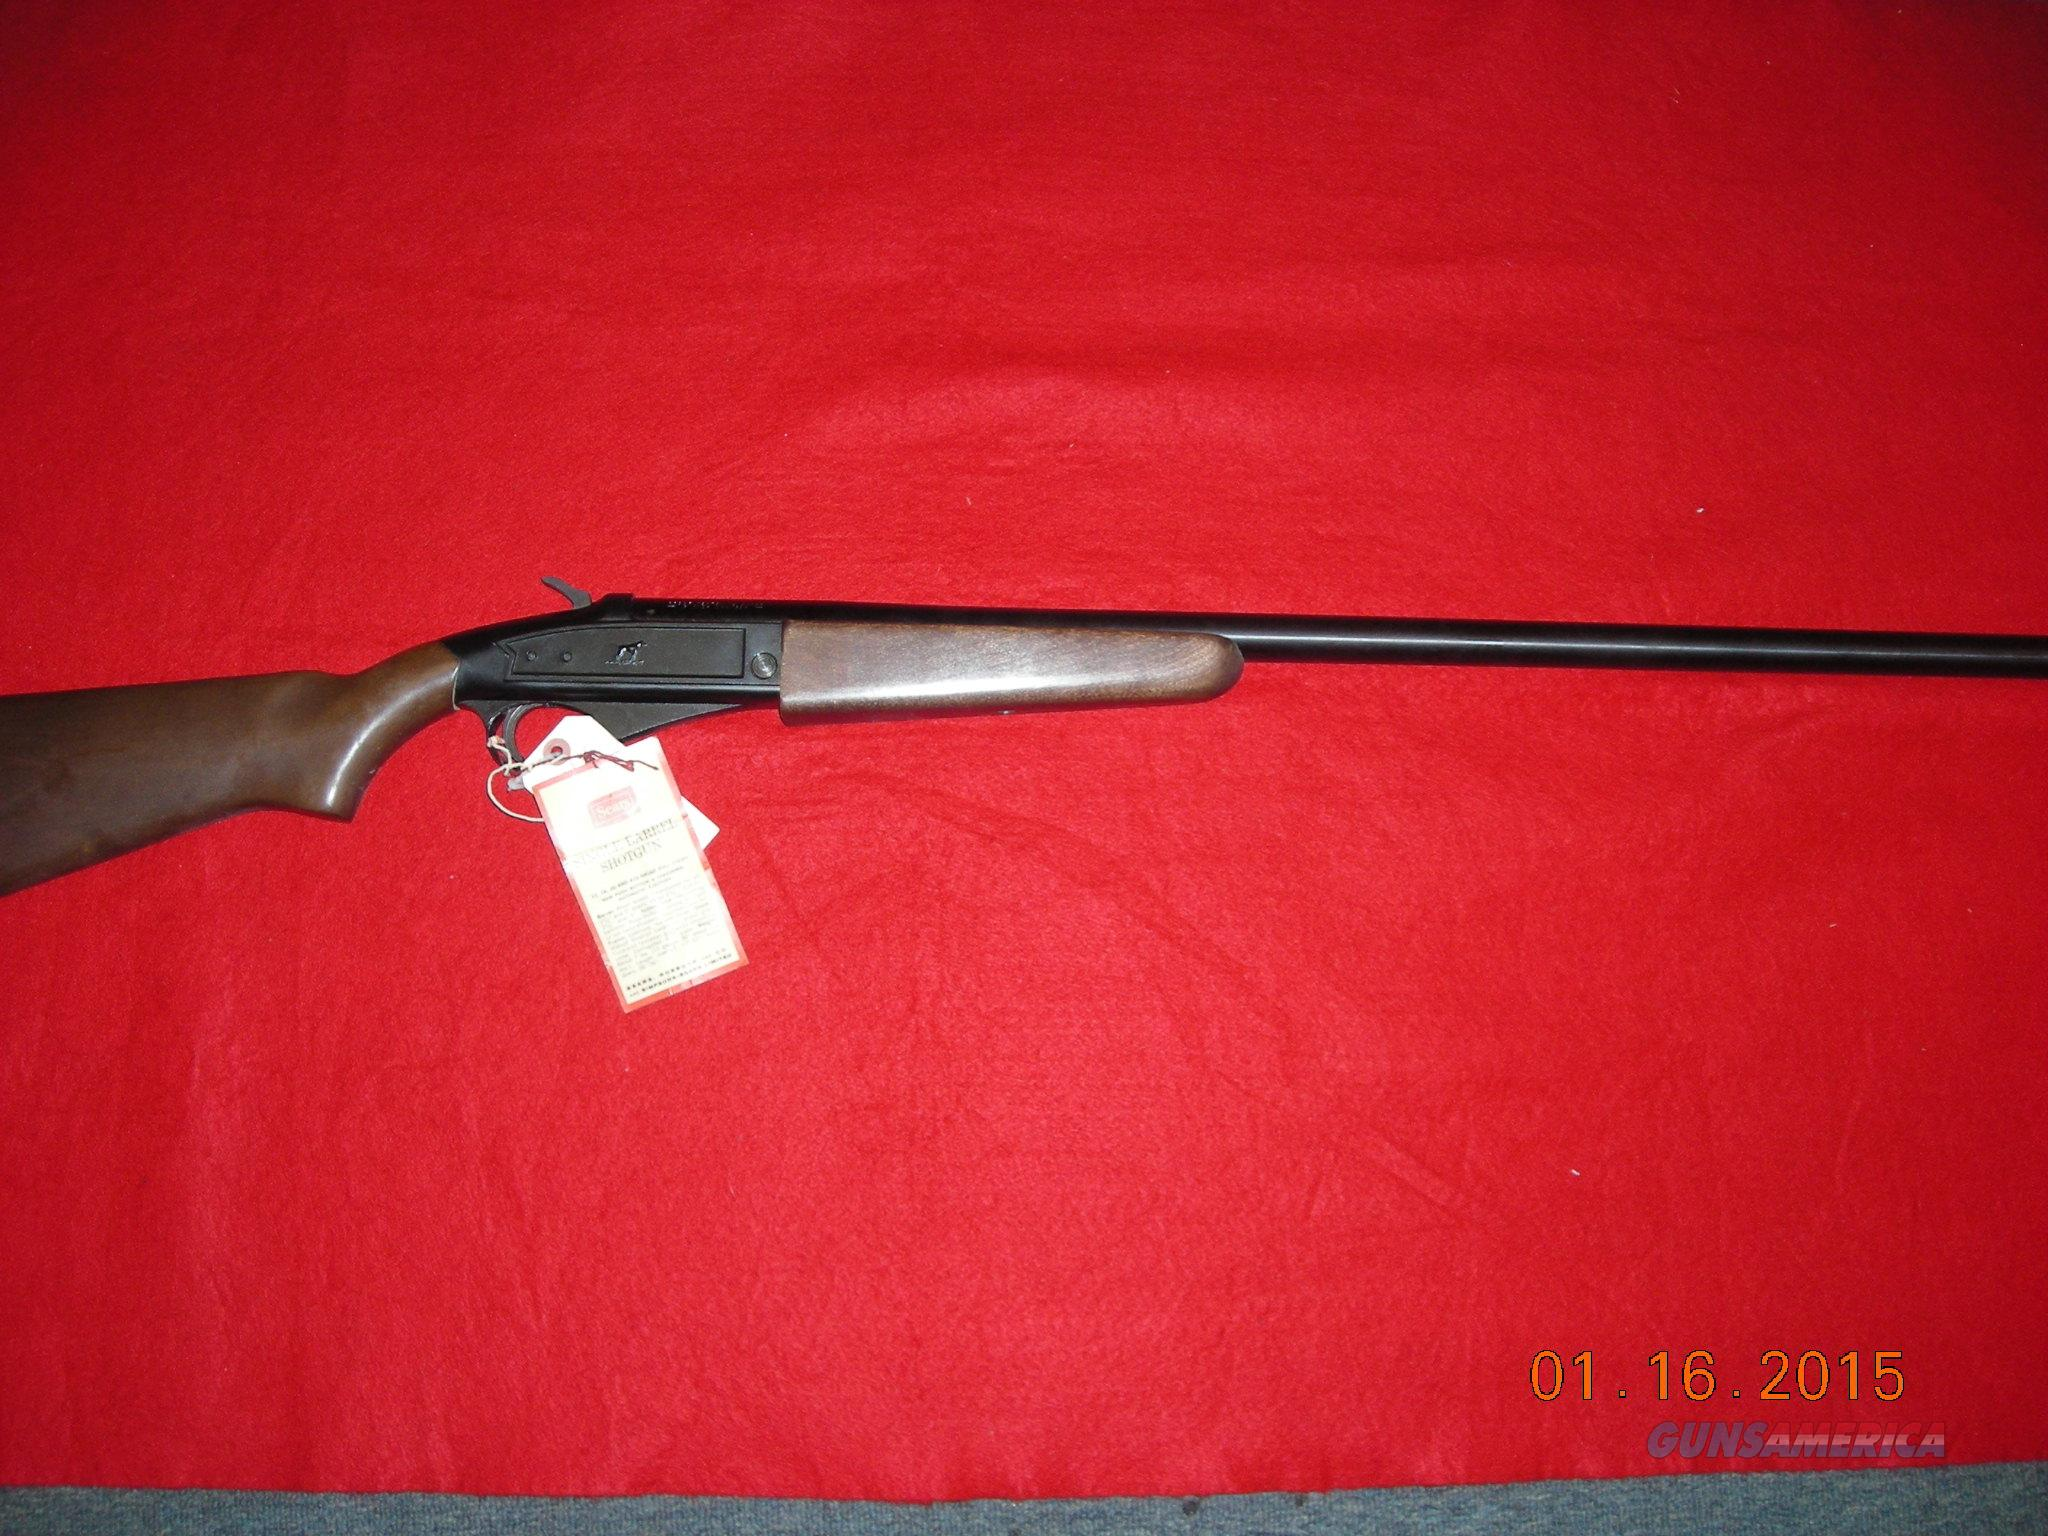 SAVAGE / SEARS 12GA SINGLE SHOT  Guns > Shotguns > Savage Shotguns